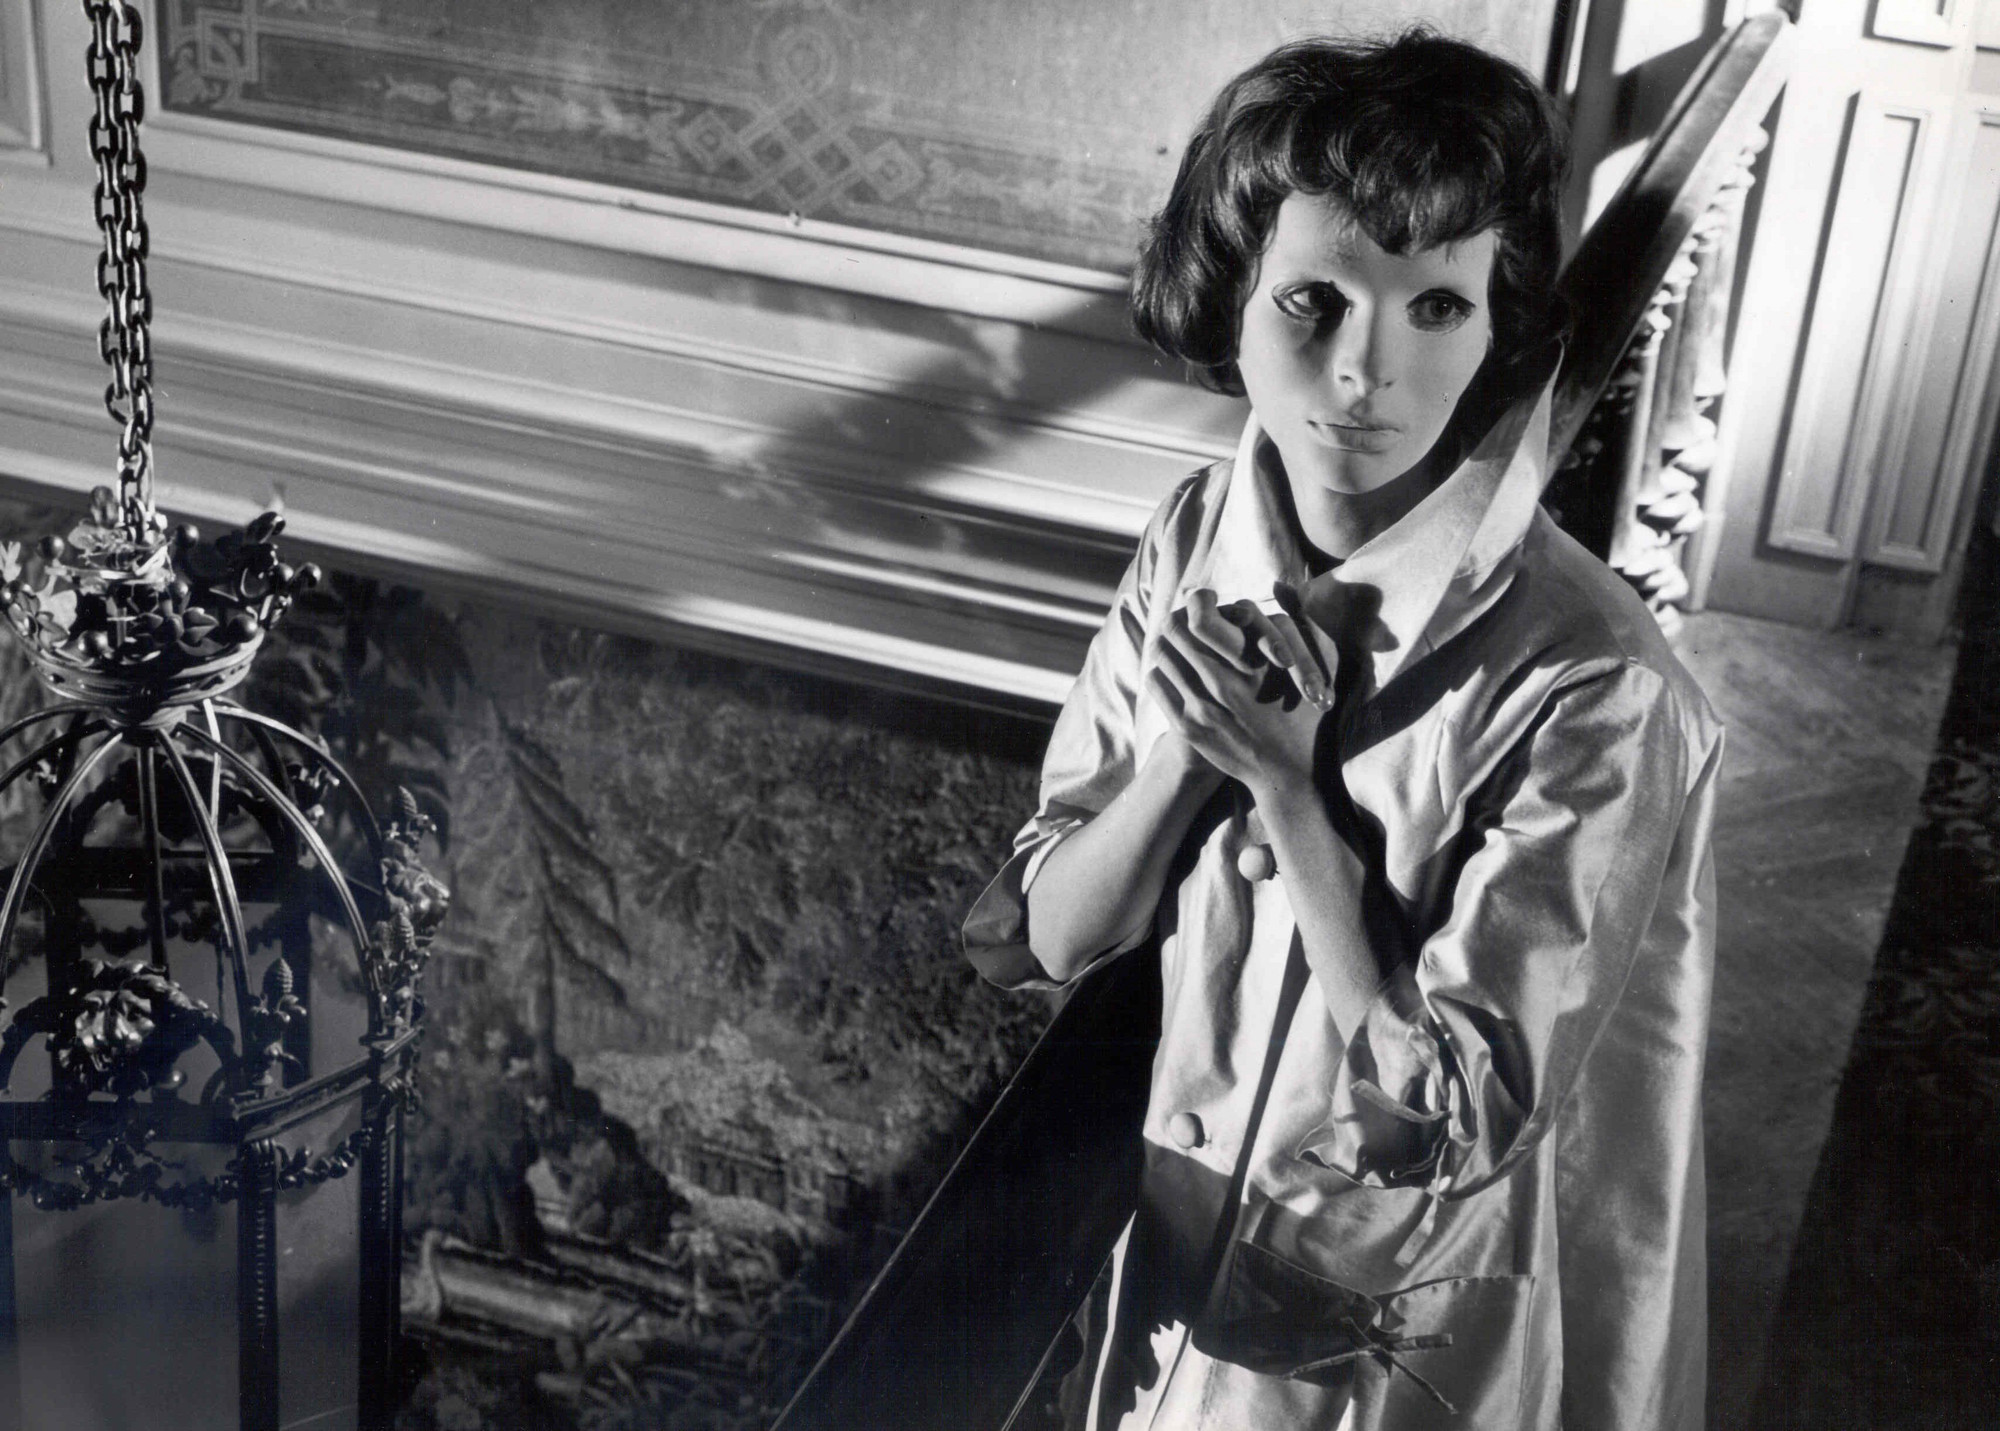 Les Yeux Sans Visage (Eyes Without a Face). 1960. France, Italy. Directed by Georges Franju. Courtesy Rialto Pictures